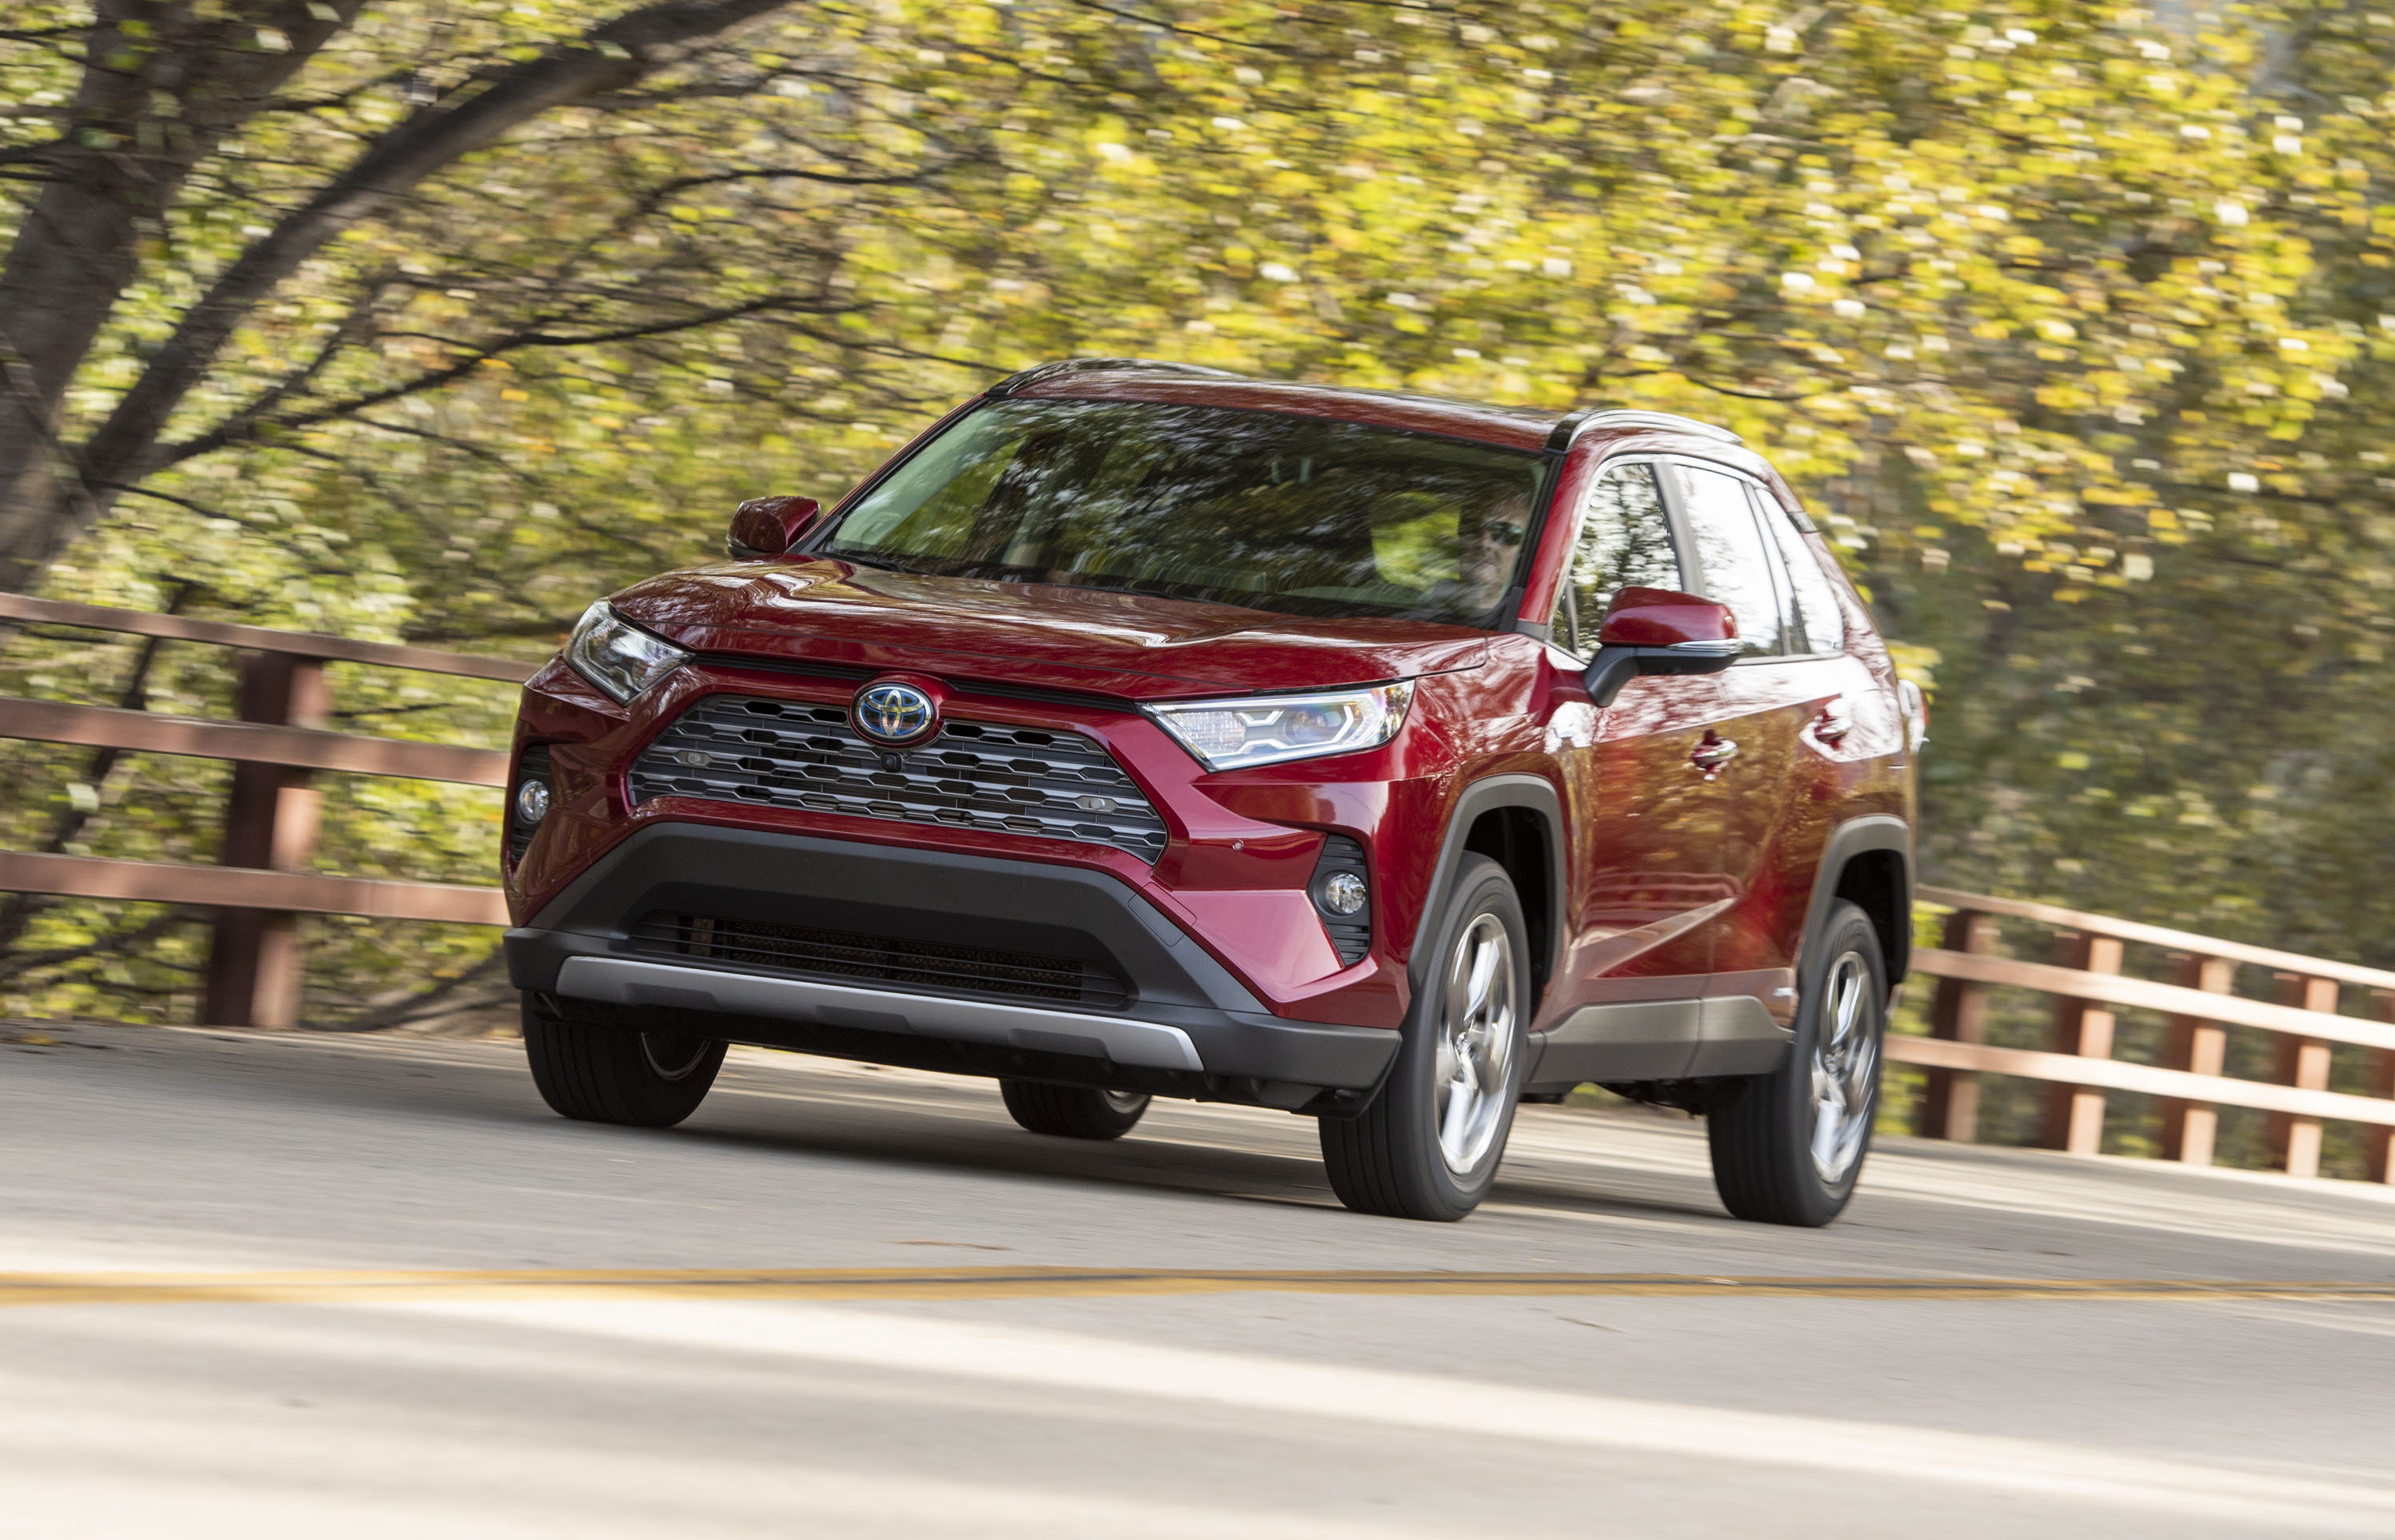 2019 Toyota Rav4 Vs 2019 Honda Cr V Compare Cars